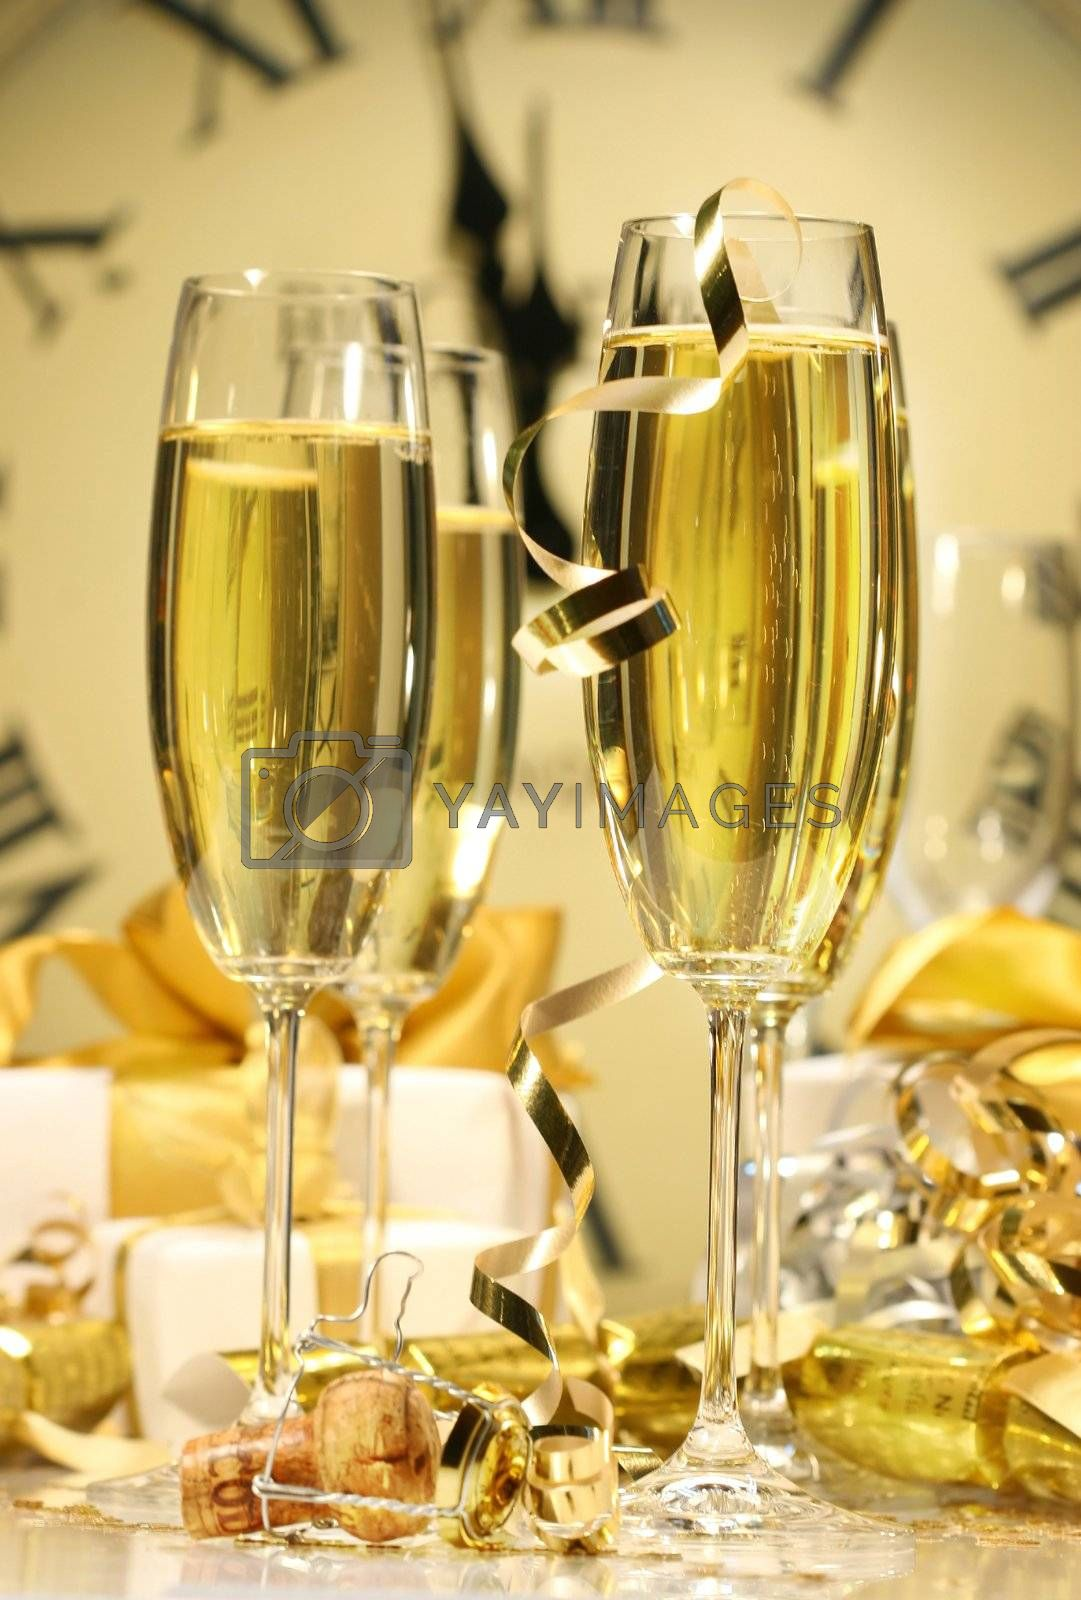 Glasses of champagne ready to celebrate by Sandralise